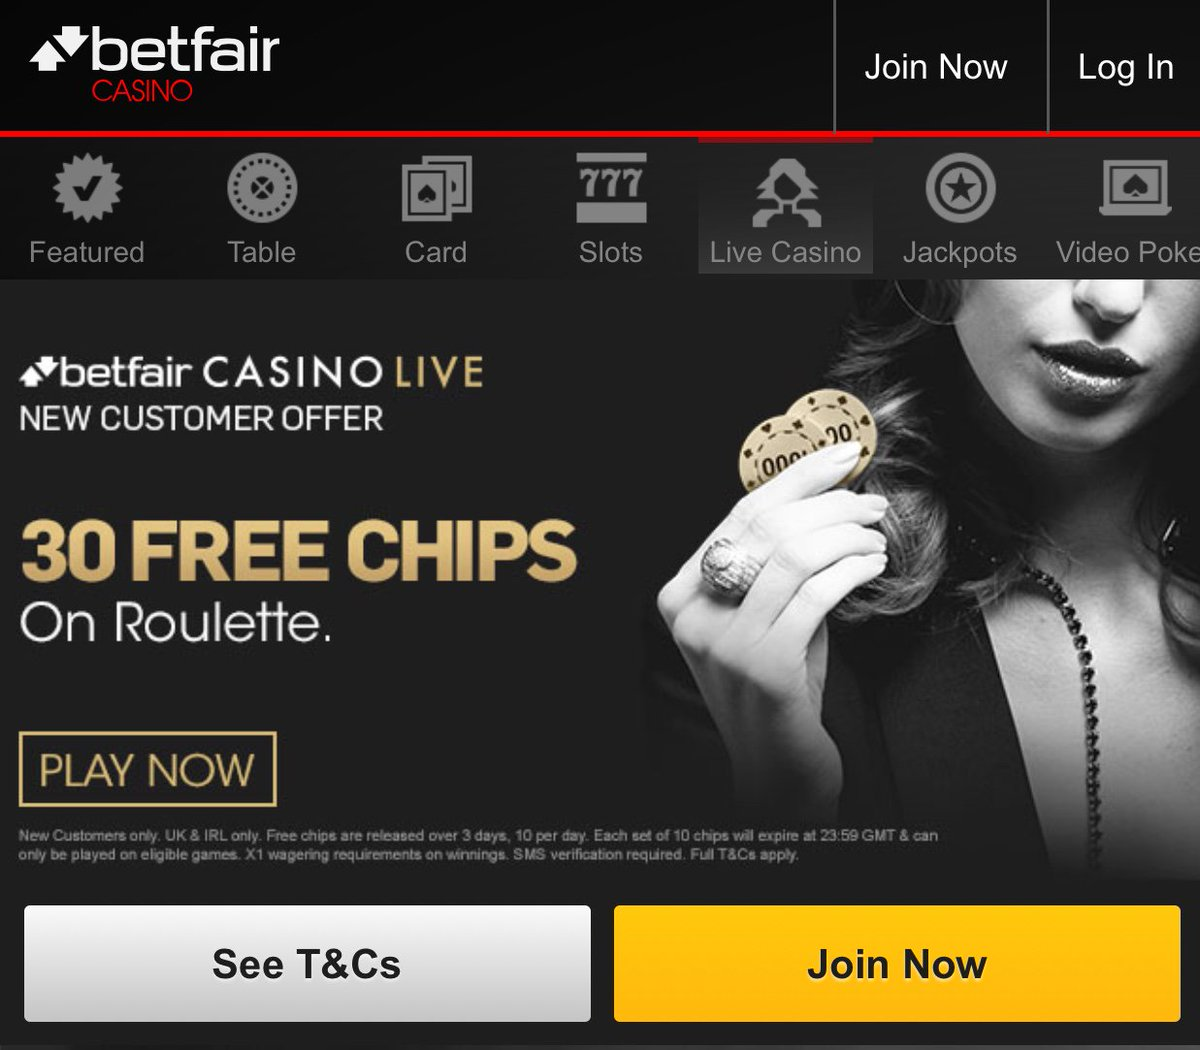 30 #free #chips (NO deposit required) >> bit.ly/betfair5 #horsetips #handicape #tipster #facup